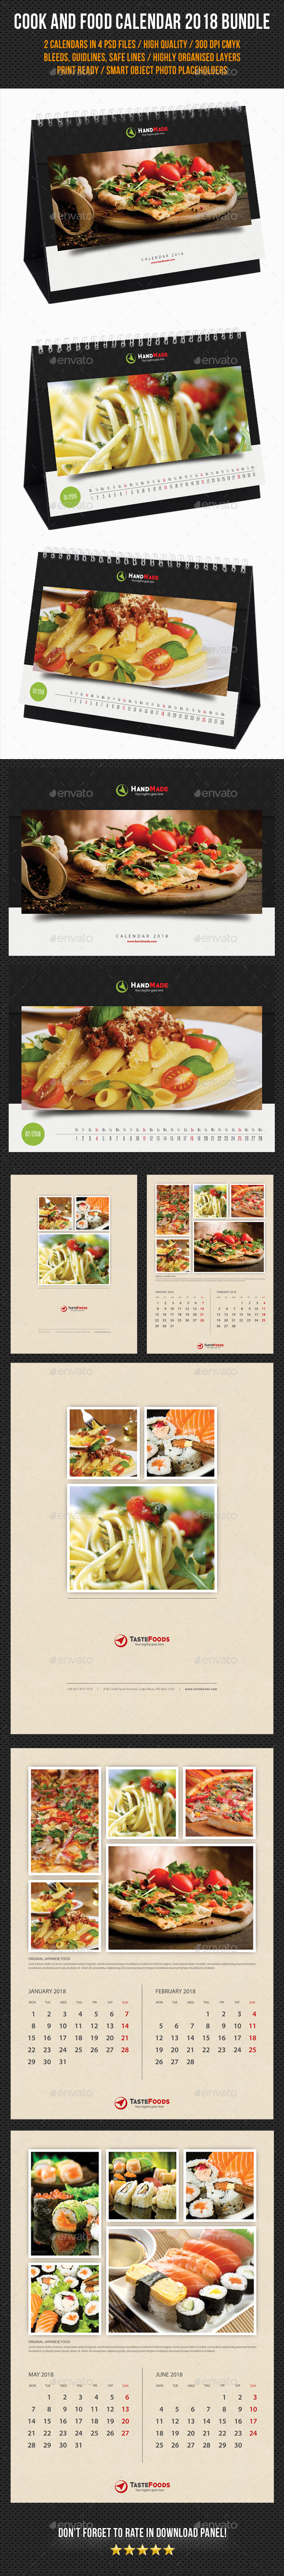 2 in 1 Cook And Food Calendar 2018 Bundle 02 - Calendars Stationery